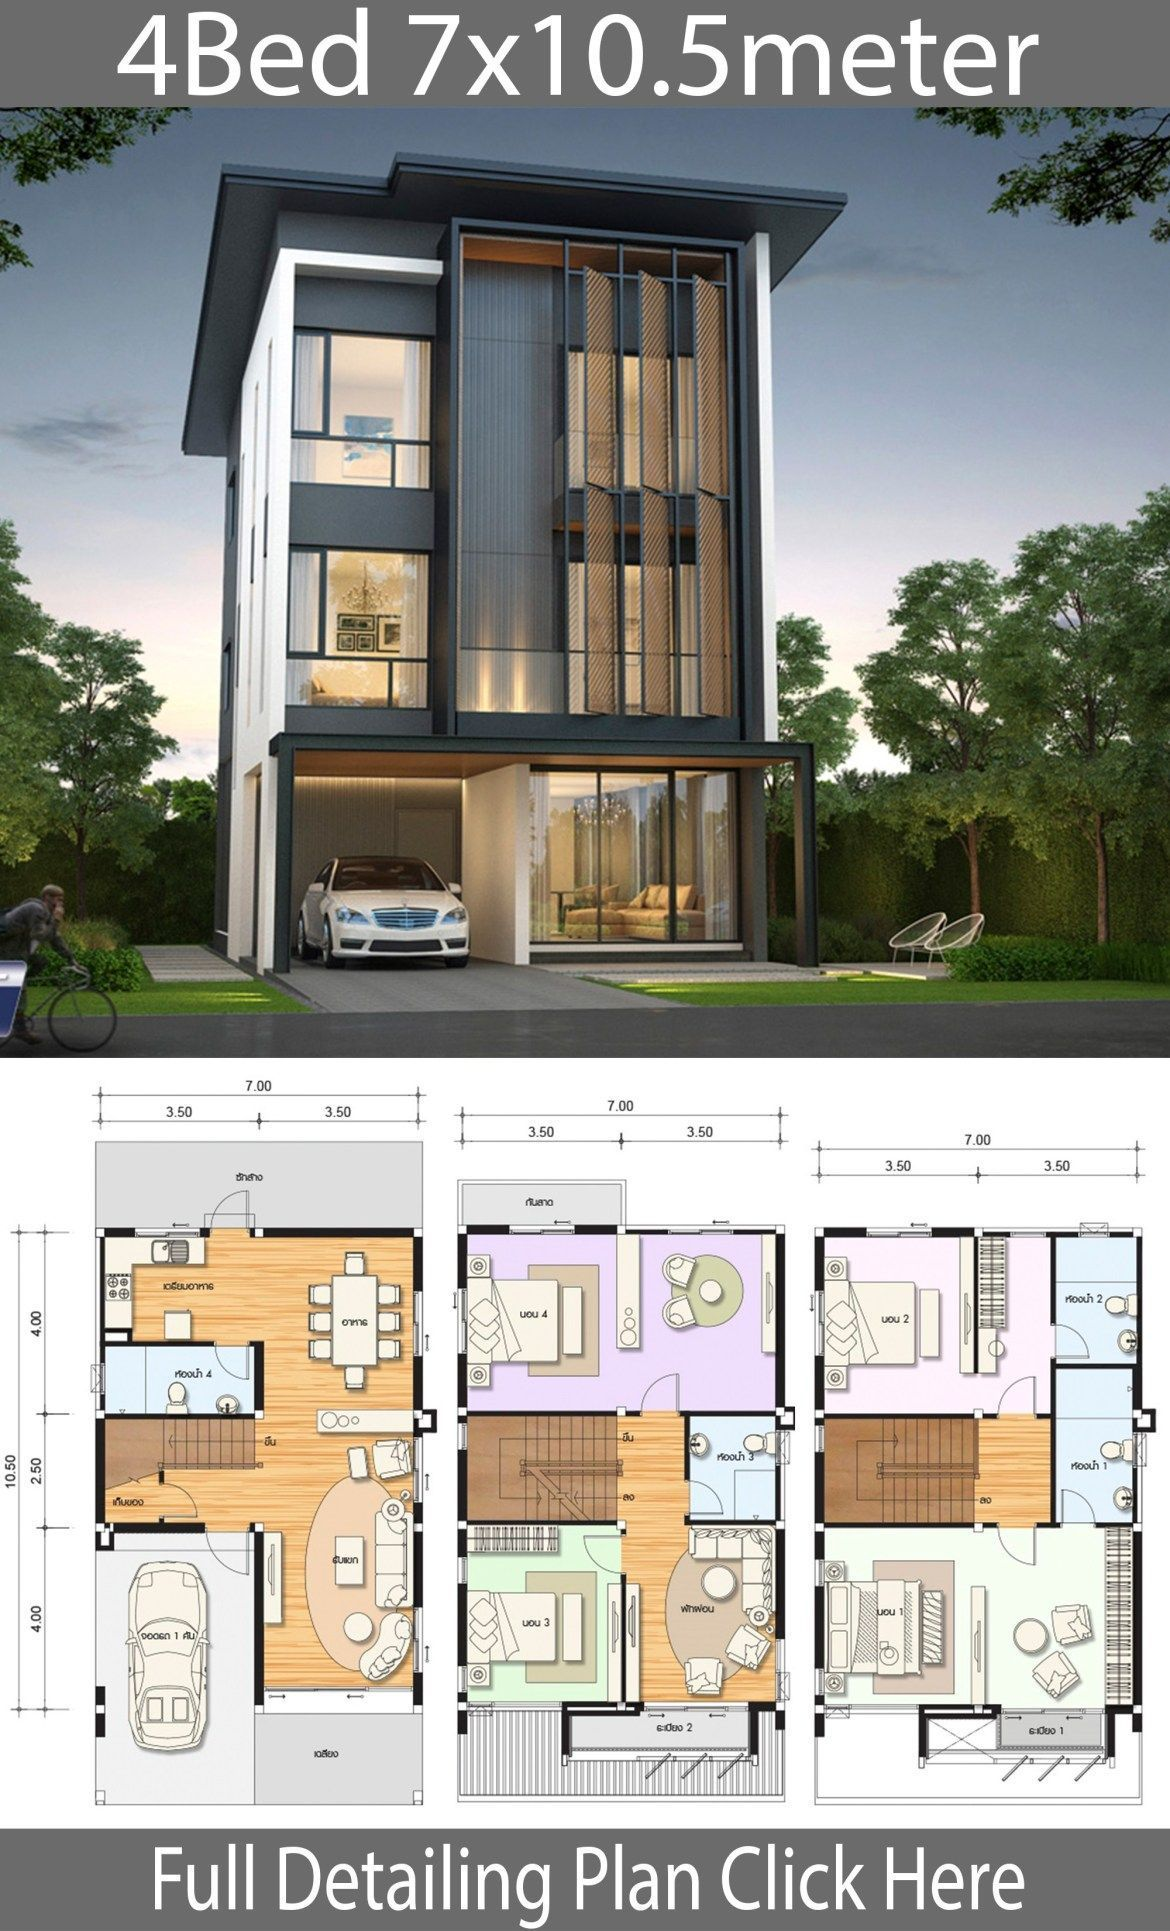 House Design Plan 7 10 5m With 4 Bedrooms Bedrooms Design Hauswohnzimmer House Plan Narrow House Plans Duplex House Design Architectural House Plans